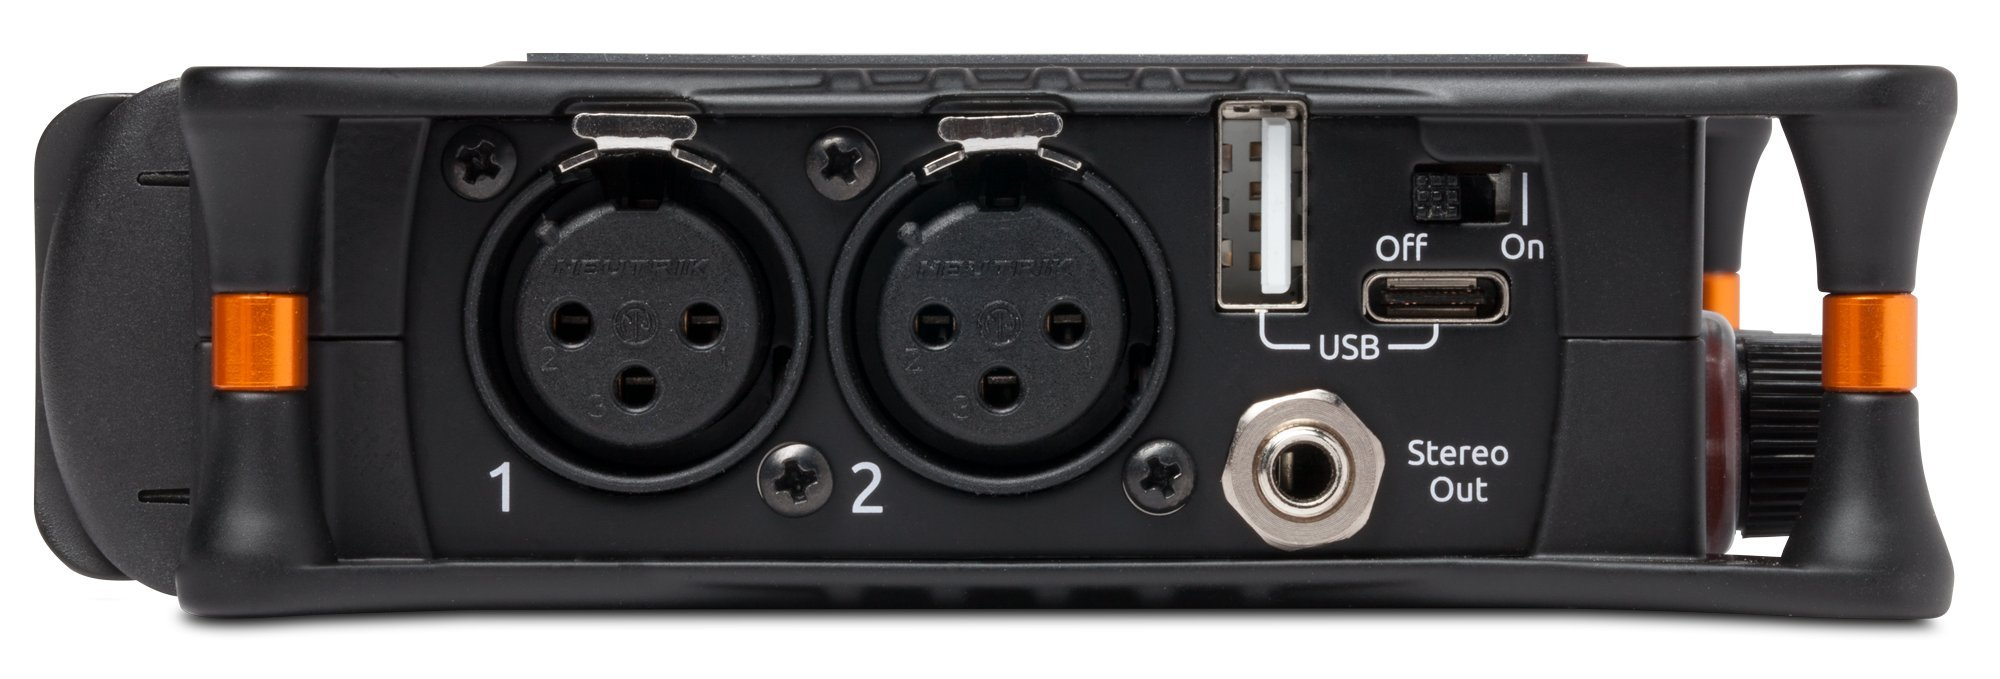 Sound Devices MixPre-3 Portable Multichannel Audio Recorder/Mixer, and USB Audio Interface by Sound Devices (Image #4)